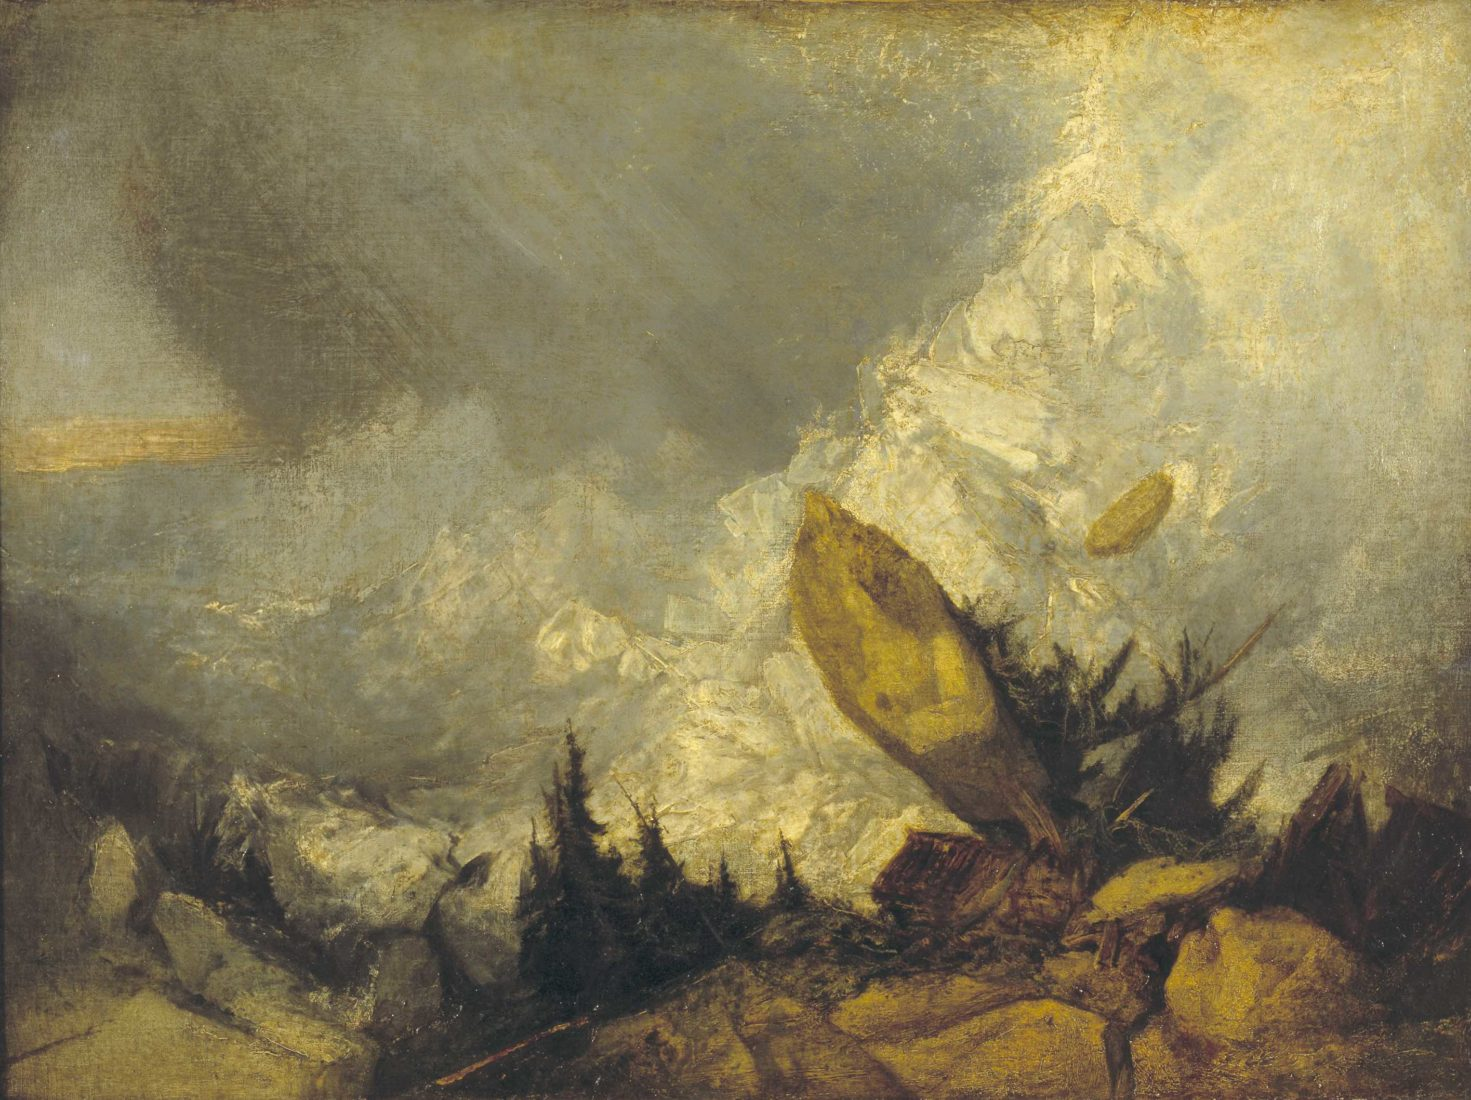 William Turner, The Fall of an Avalanche in the Grisons